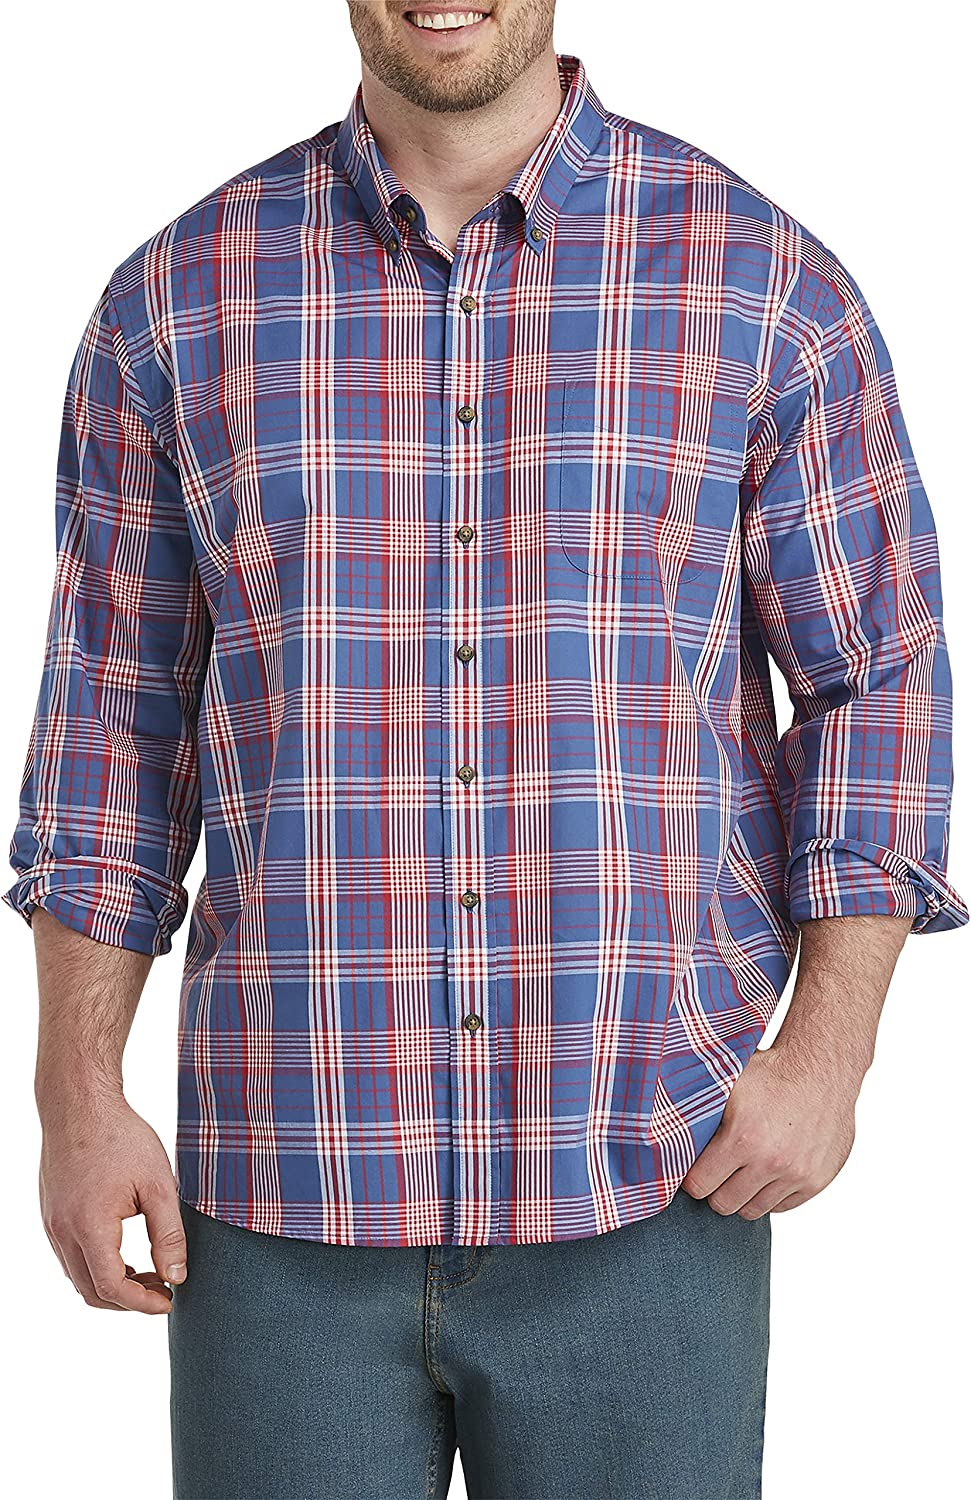 Harbor Bay by DXL Big and Tall Easy-Care Plaid Sport Shirt, True Navy